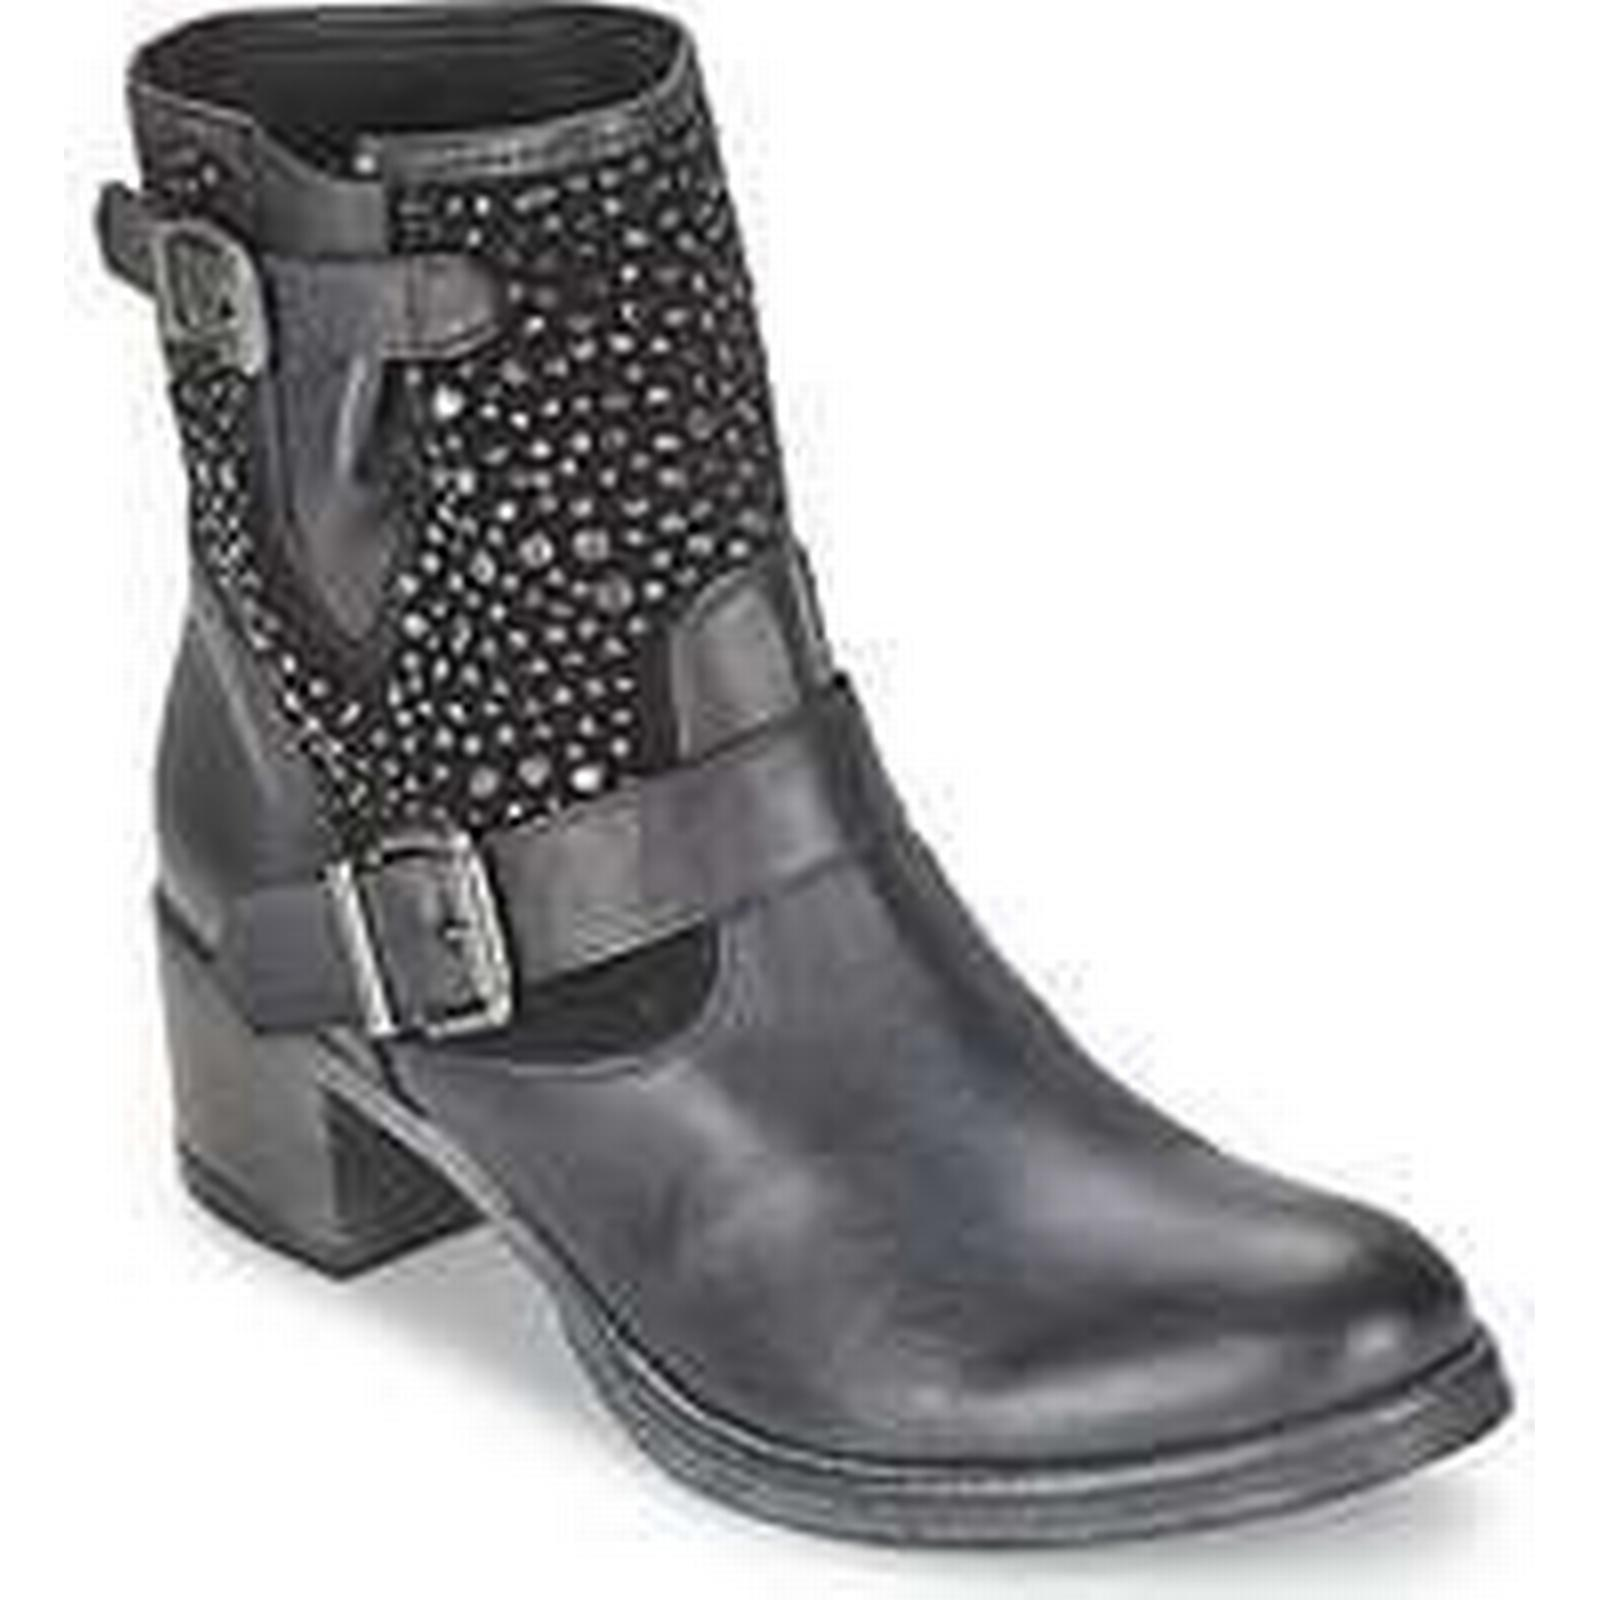 Spartoo.co.uk Meline RATA women's in Low Ankle Boots in women's Black d5def9